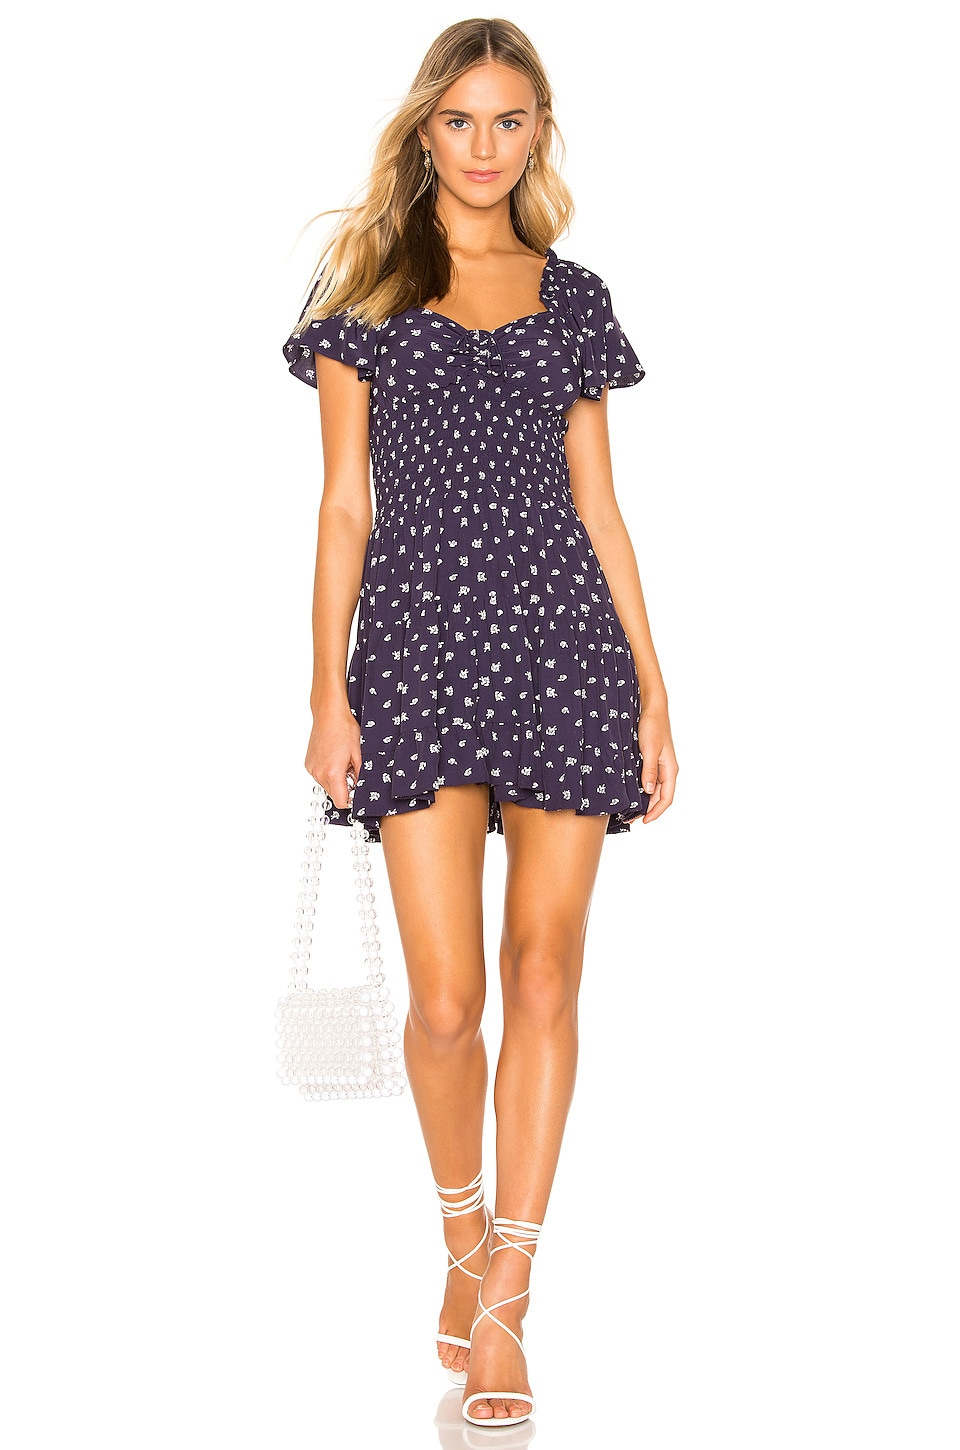 Cleobella Anne Dress in Navy